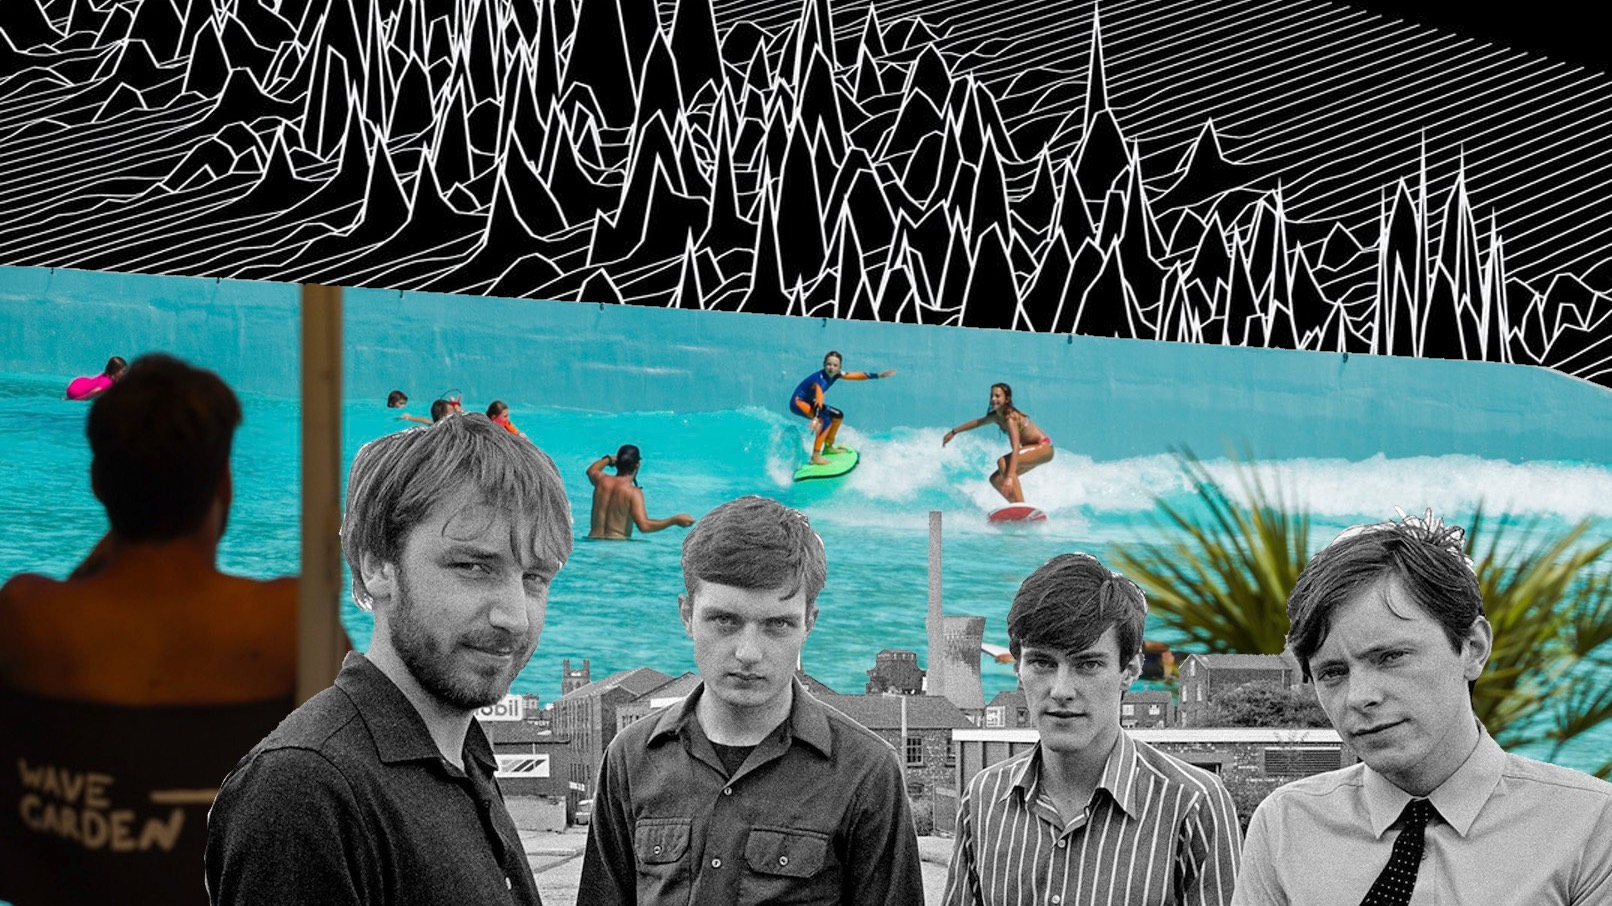 Artist mashup of Joy Division and Wavegarden Cove